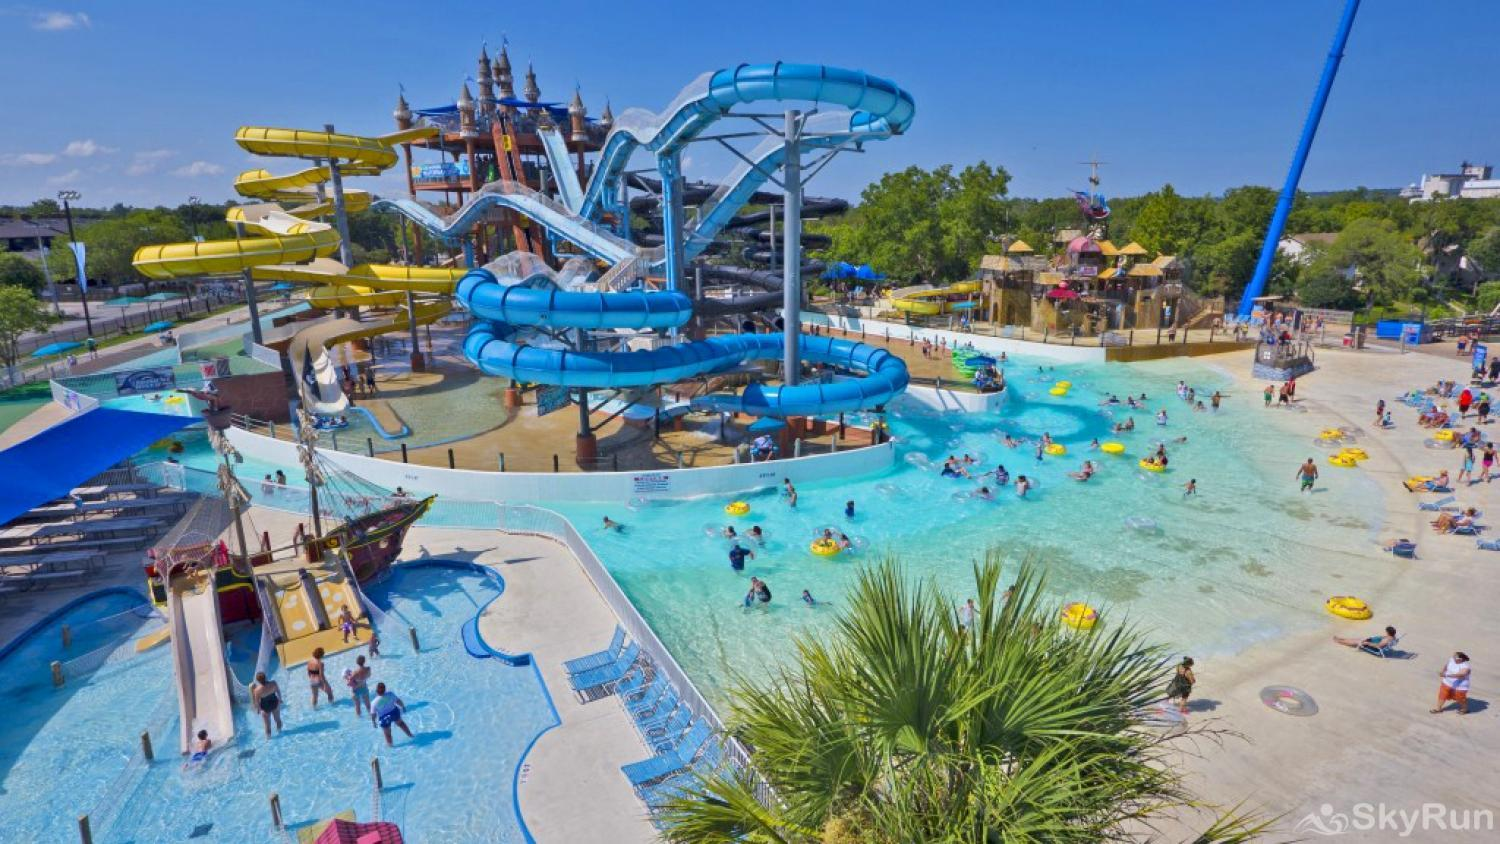 CASA DEL LAGO Schlitterbahn Waterpark, 17 miles from the property